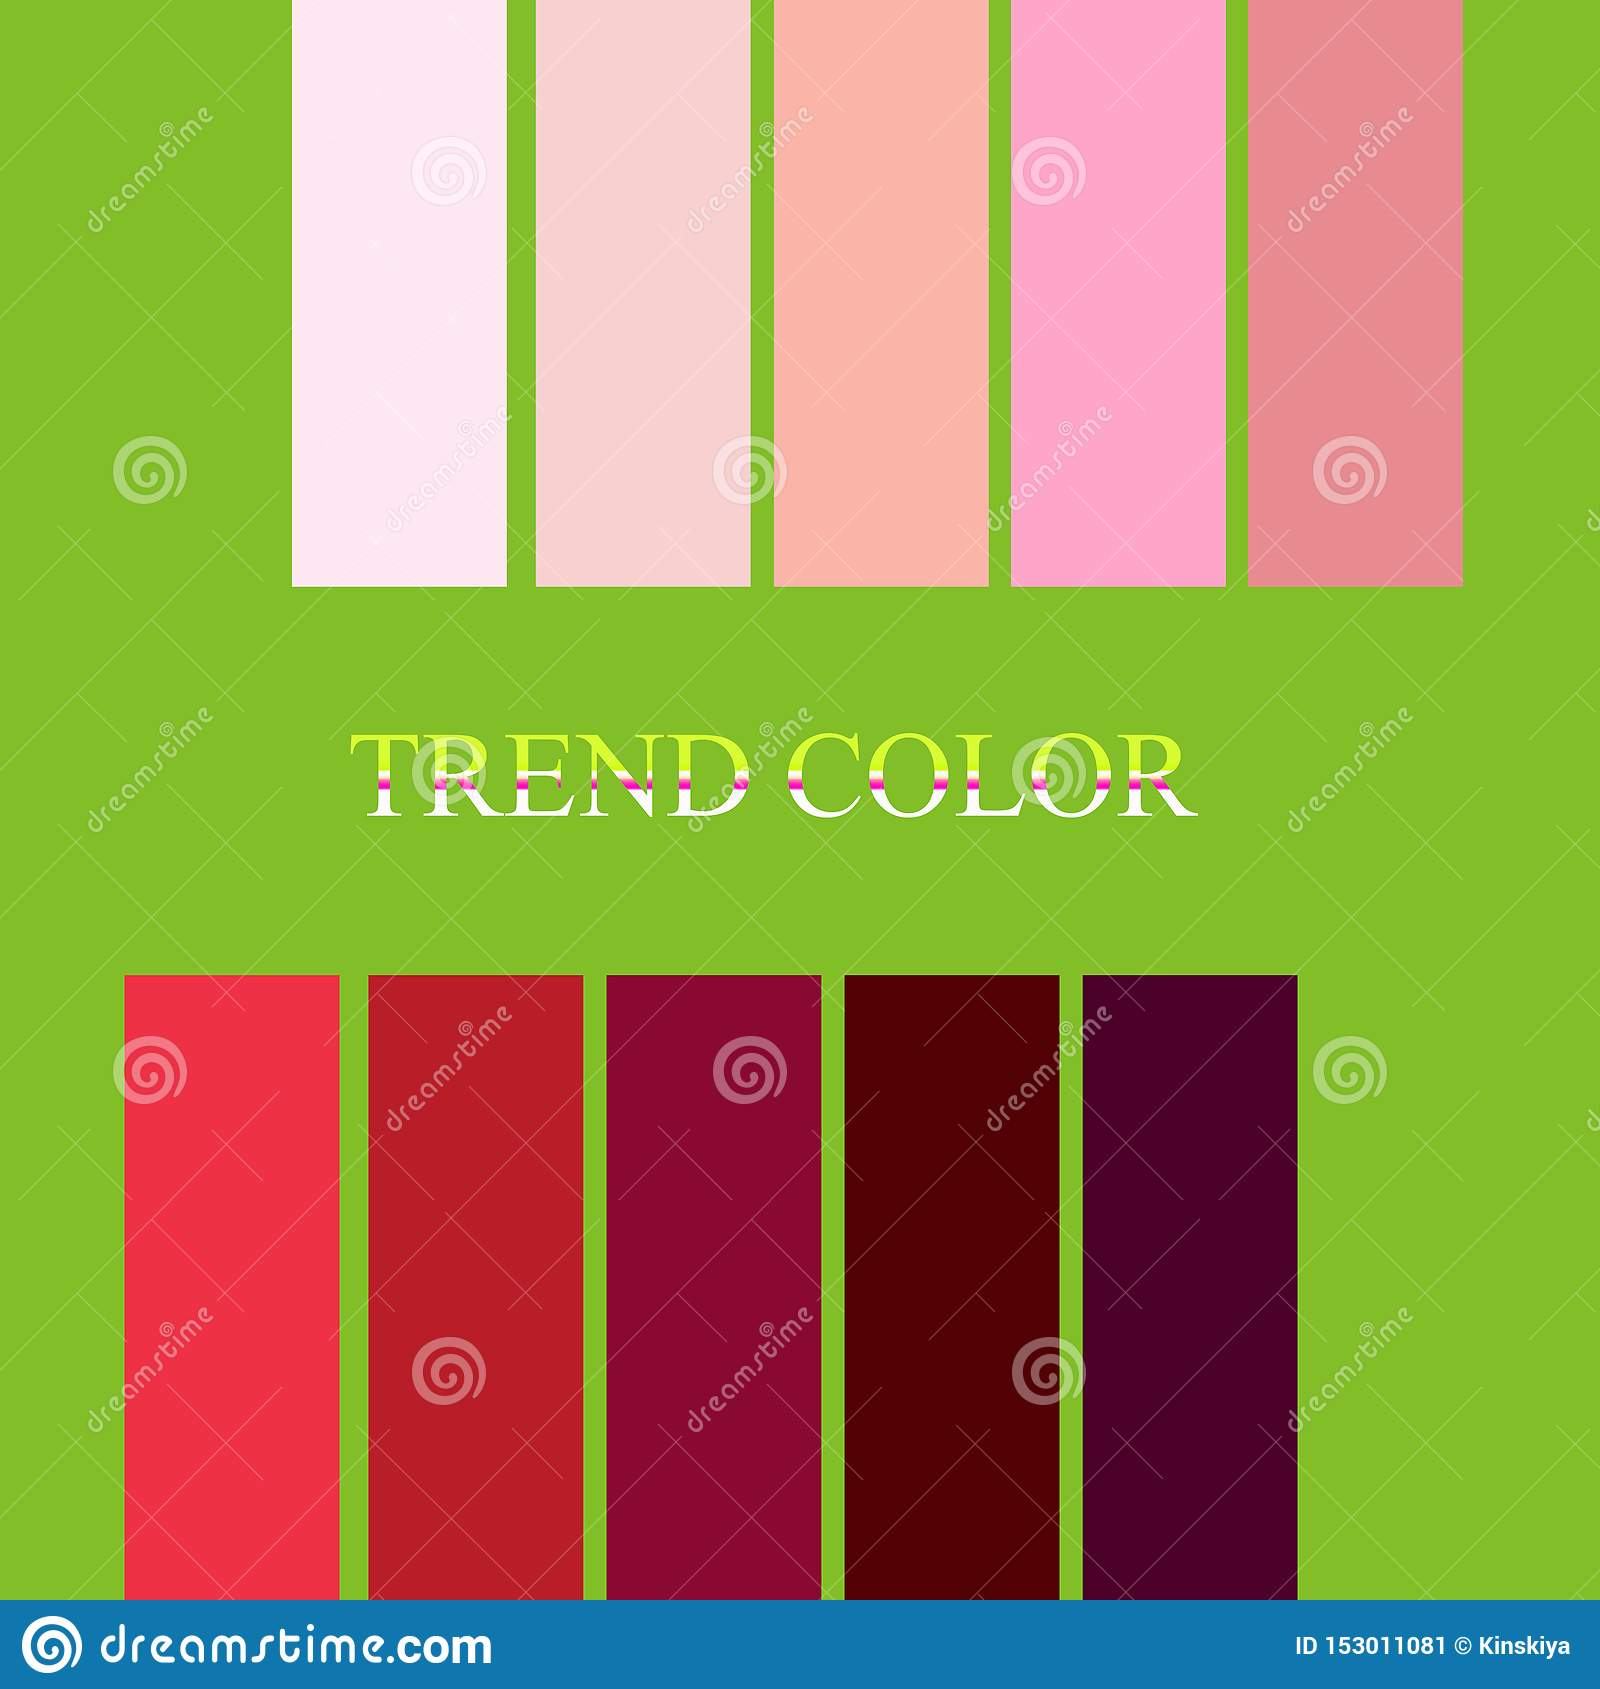 Fashion Color Palettes Trend On Green Lime Pantone Color 2019 Trend Stock Illustration Illustration Of Light Matching 153011081,Meghan Markle And Prince Harry Santa Barbara Home